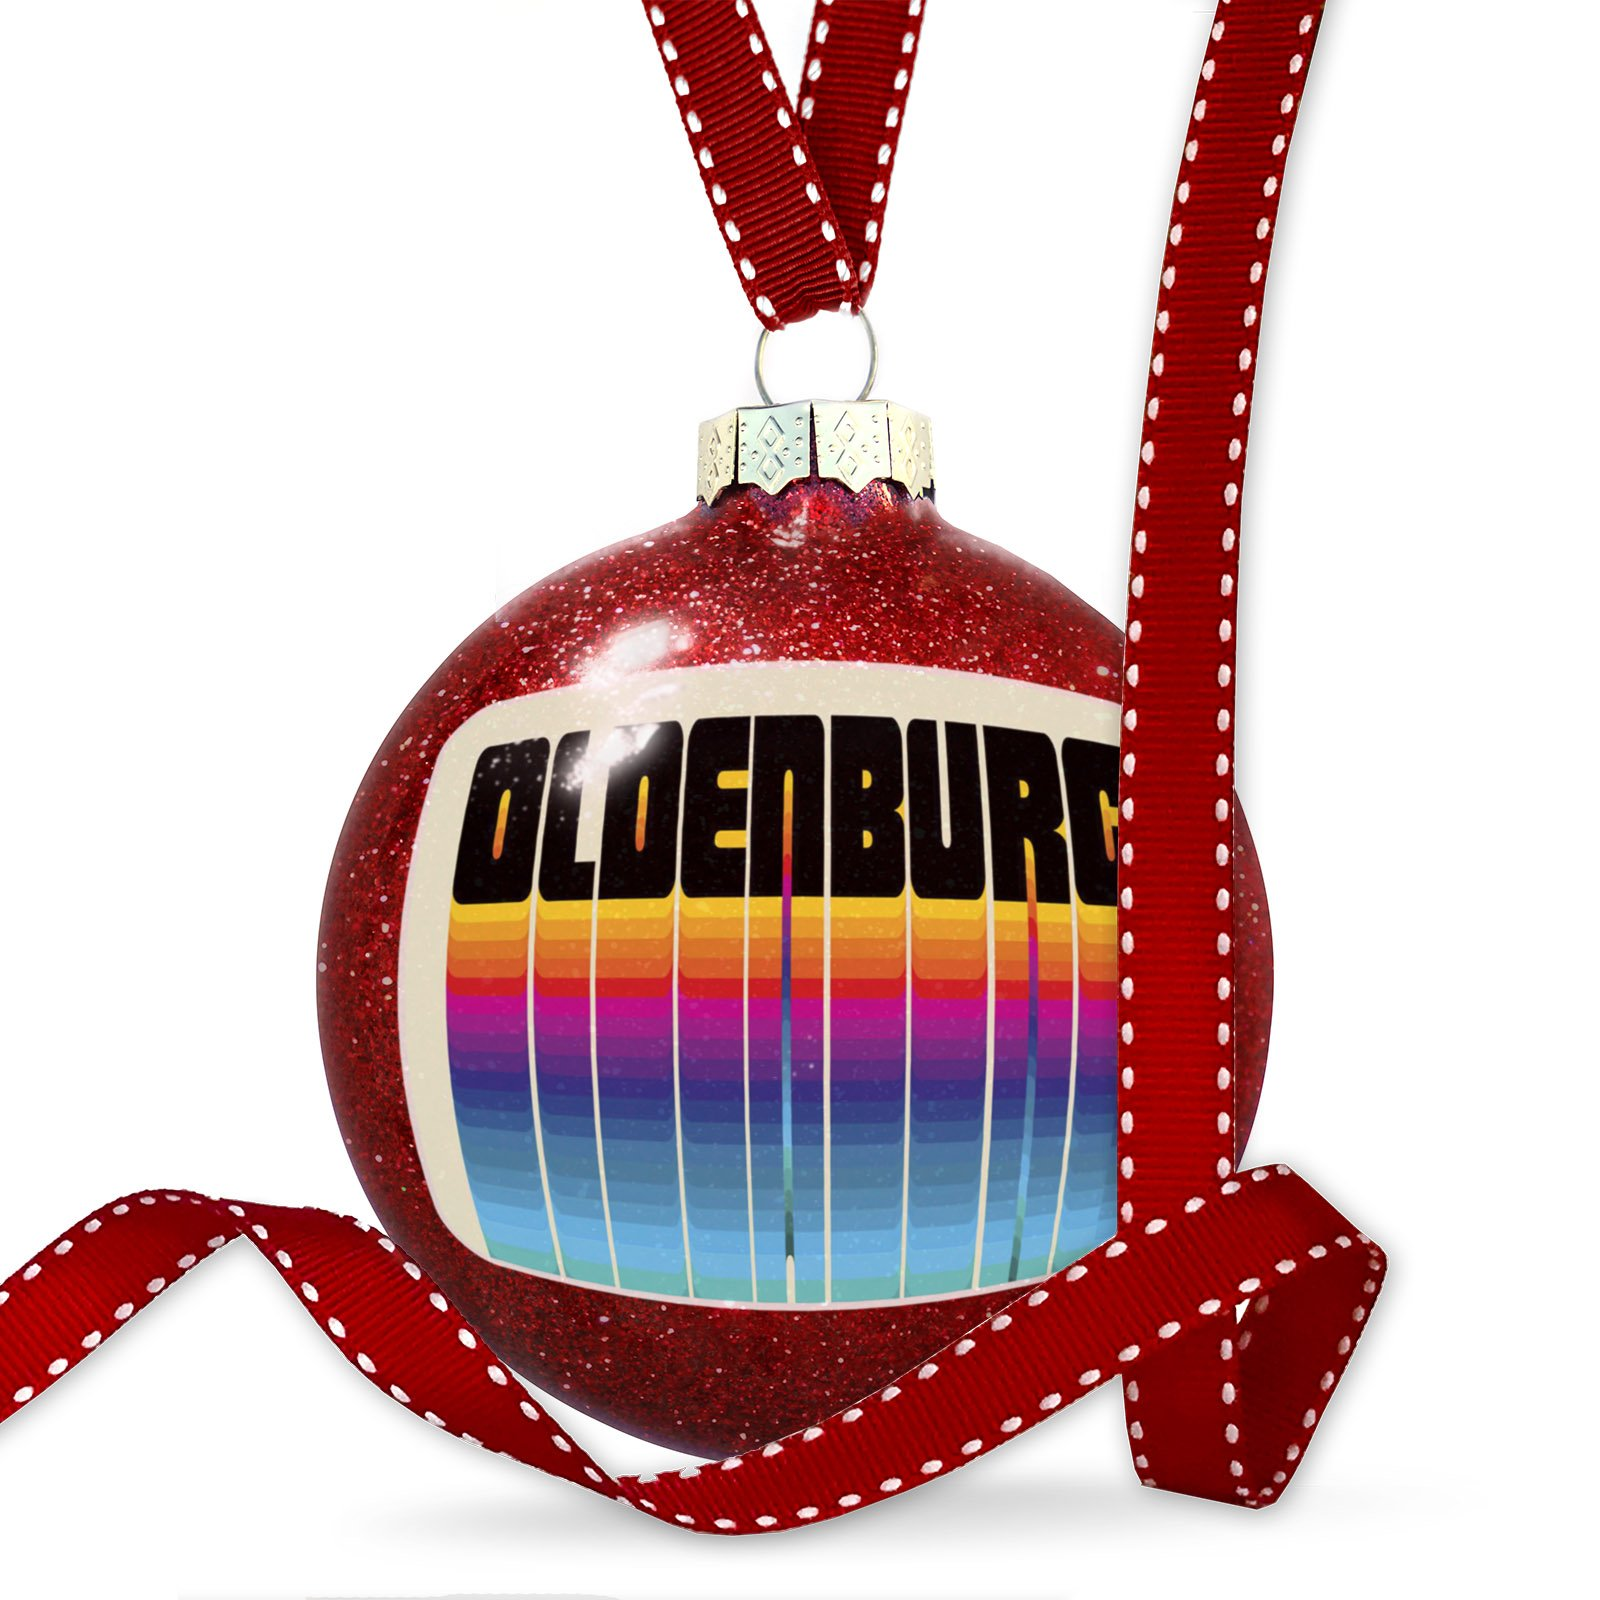 Christmas Decoration Retro Cites States Countries Oldenburg Ornament by NEONBLOND (Image #1)